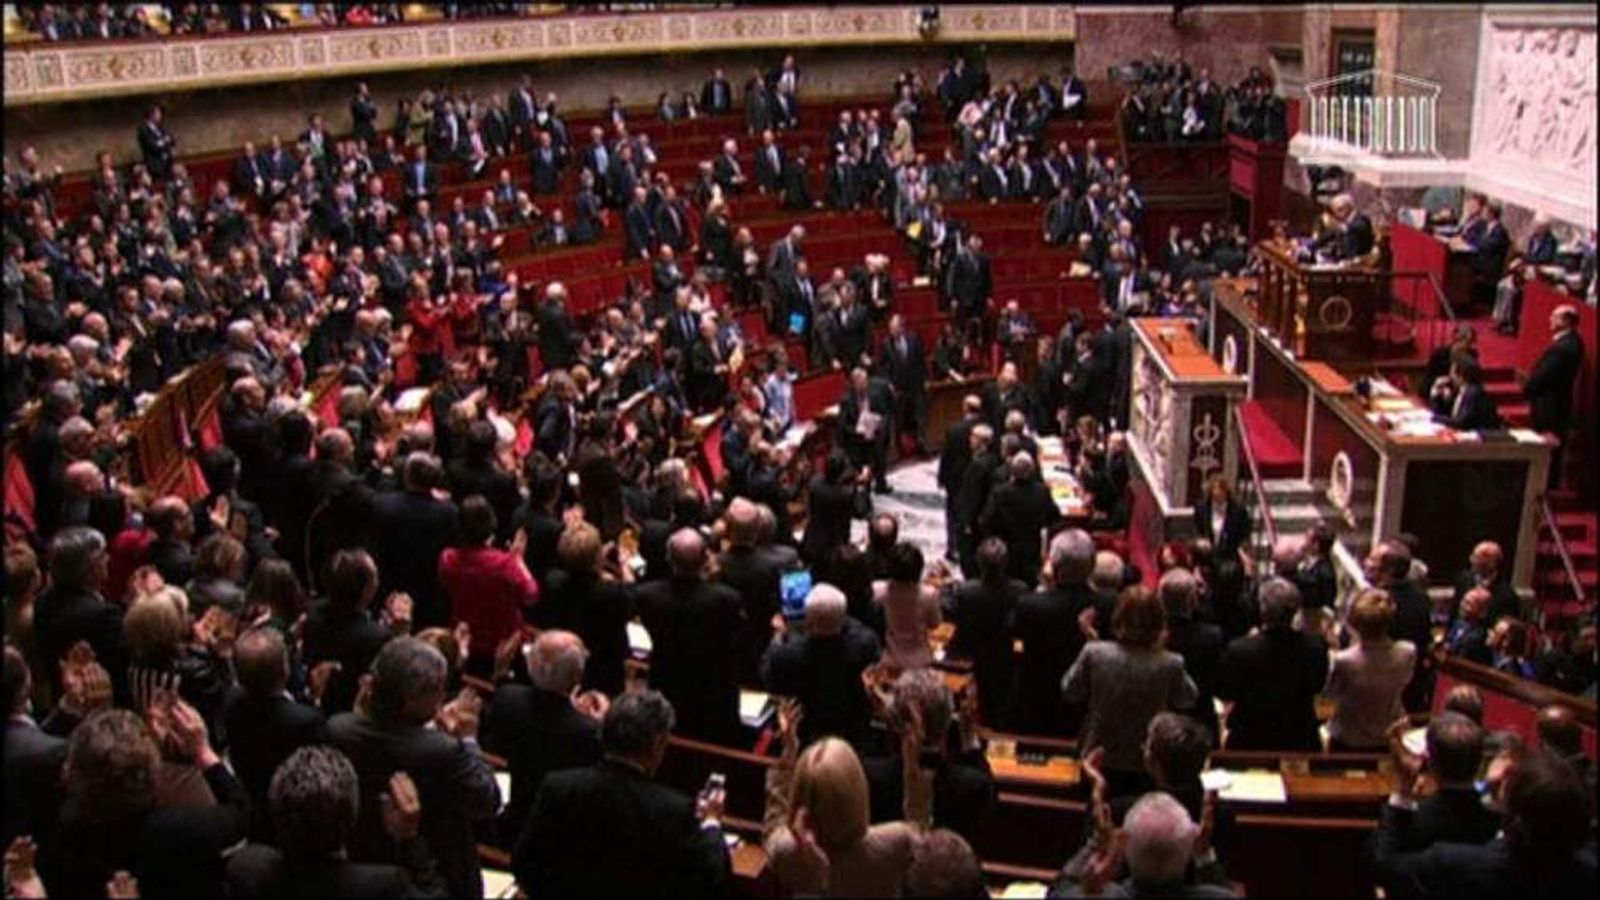 The French Parliament approves gay marriage law change